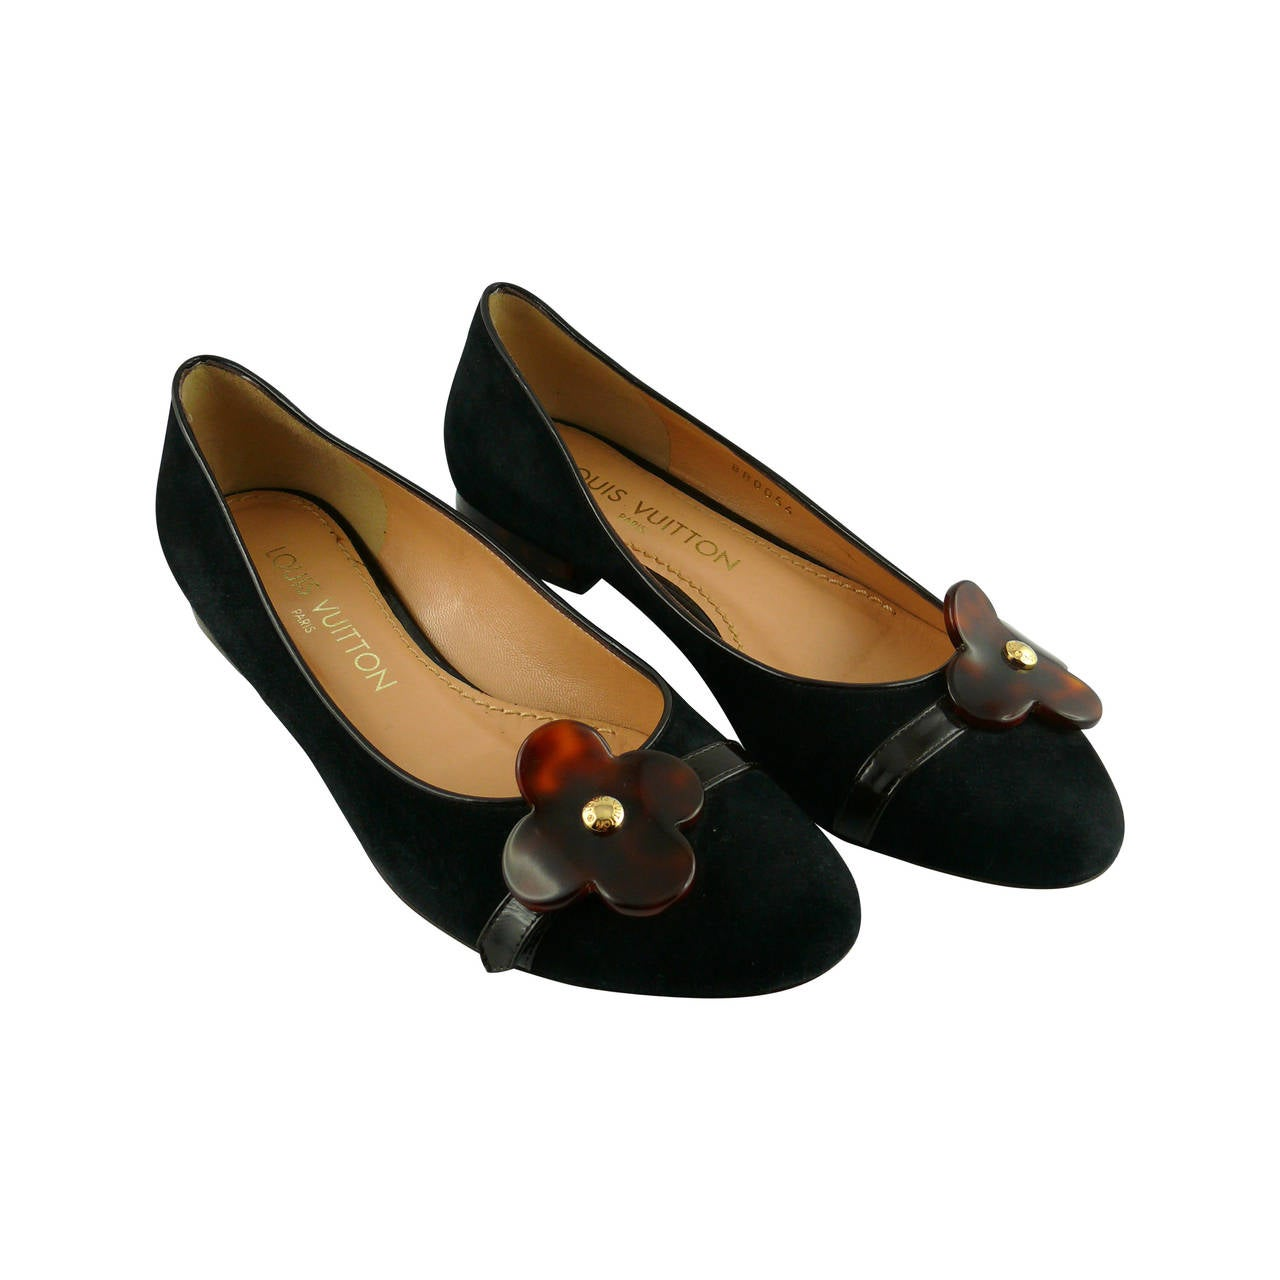 Louis Vuitton Black Suede and Resin Flower Ballet Flat IT 34 1/2 - US 5 1/2